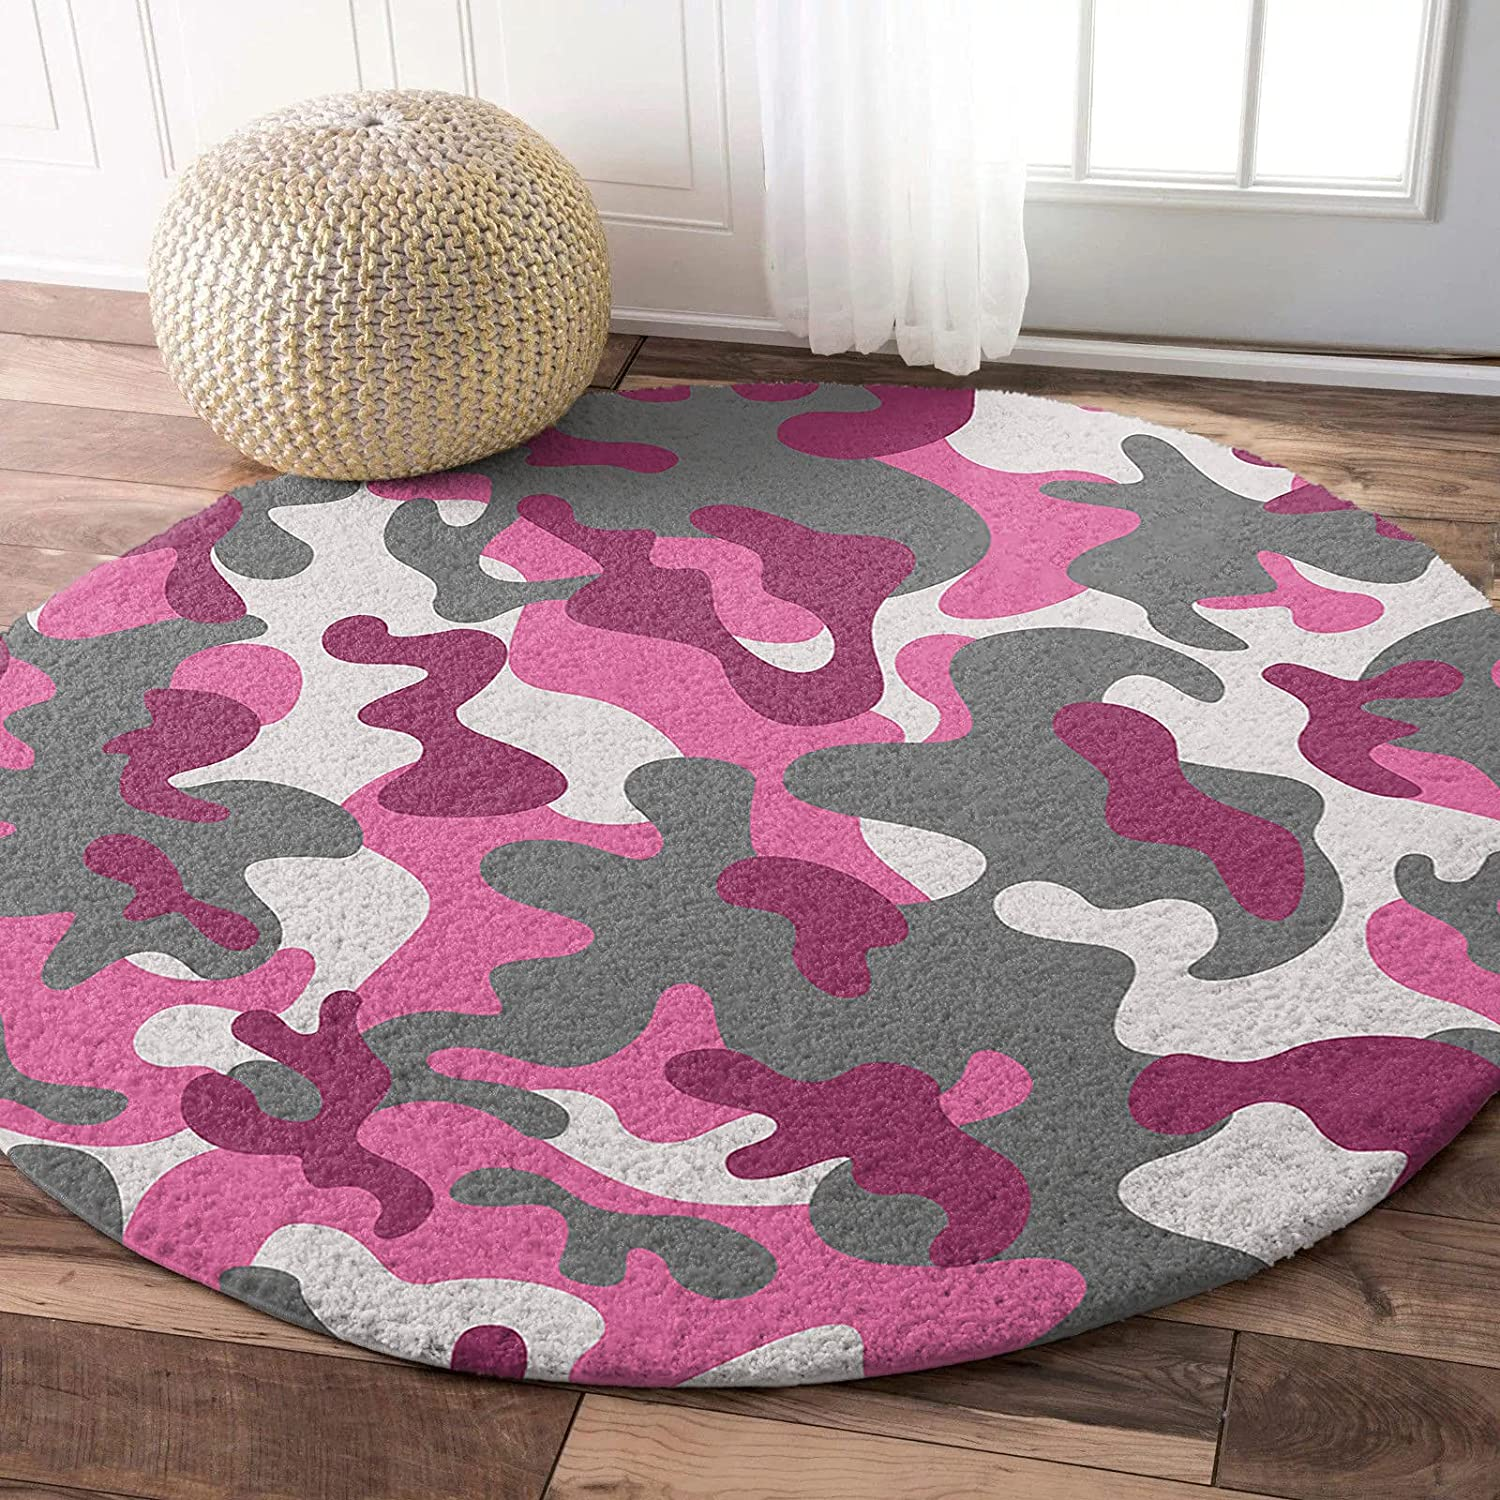 Edwiinsa Fluffy Round Area Rug Hot Very popular Pink OFFicial mail order Carpets 5ft Camouflage